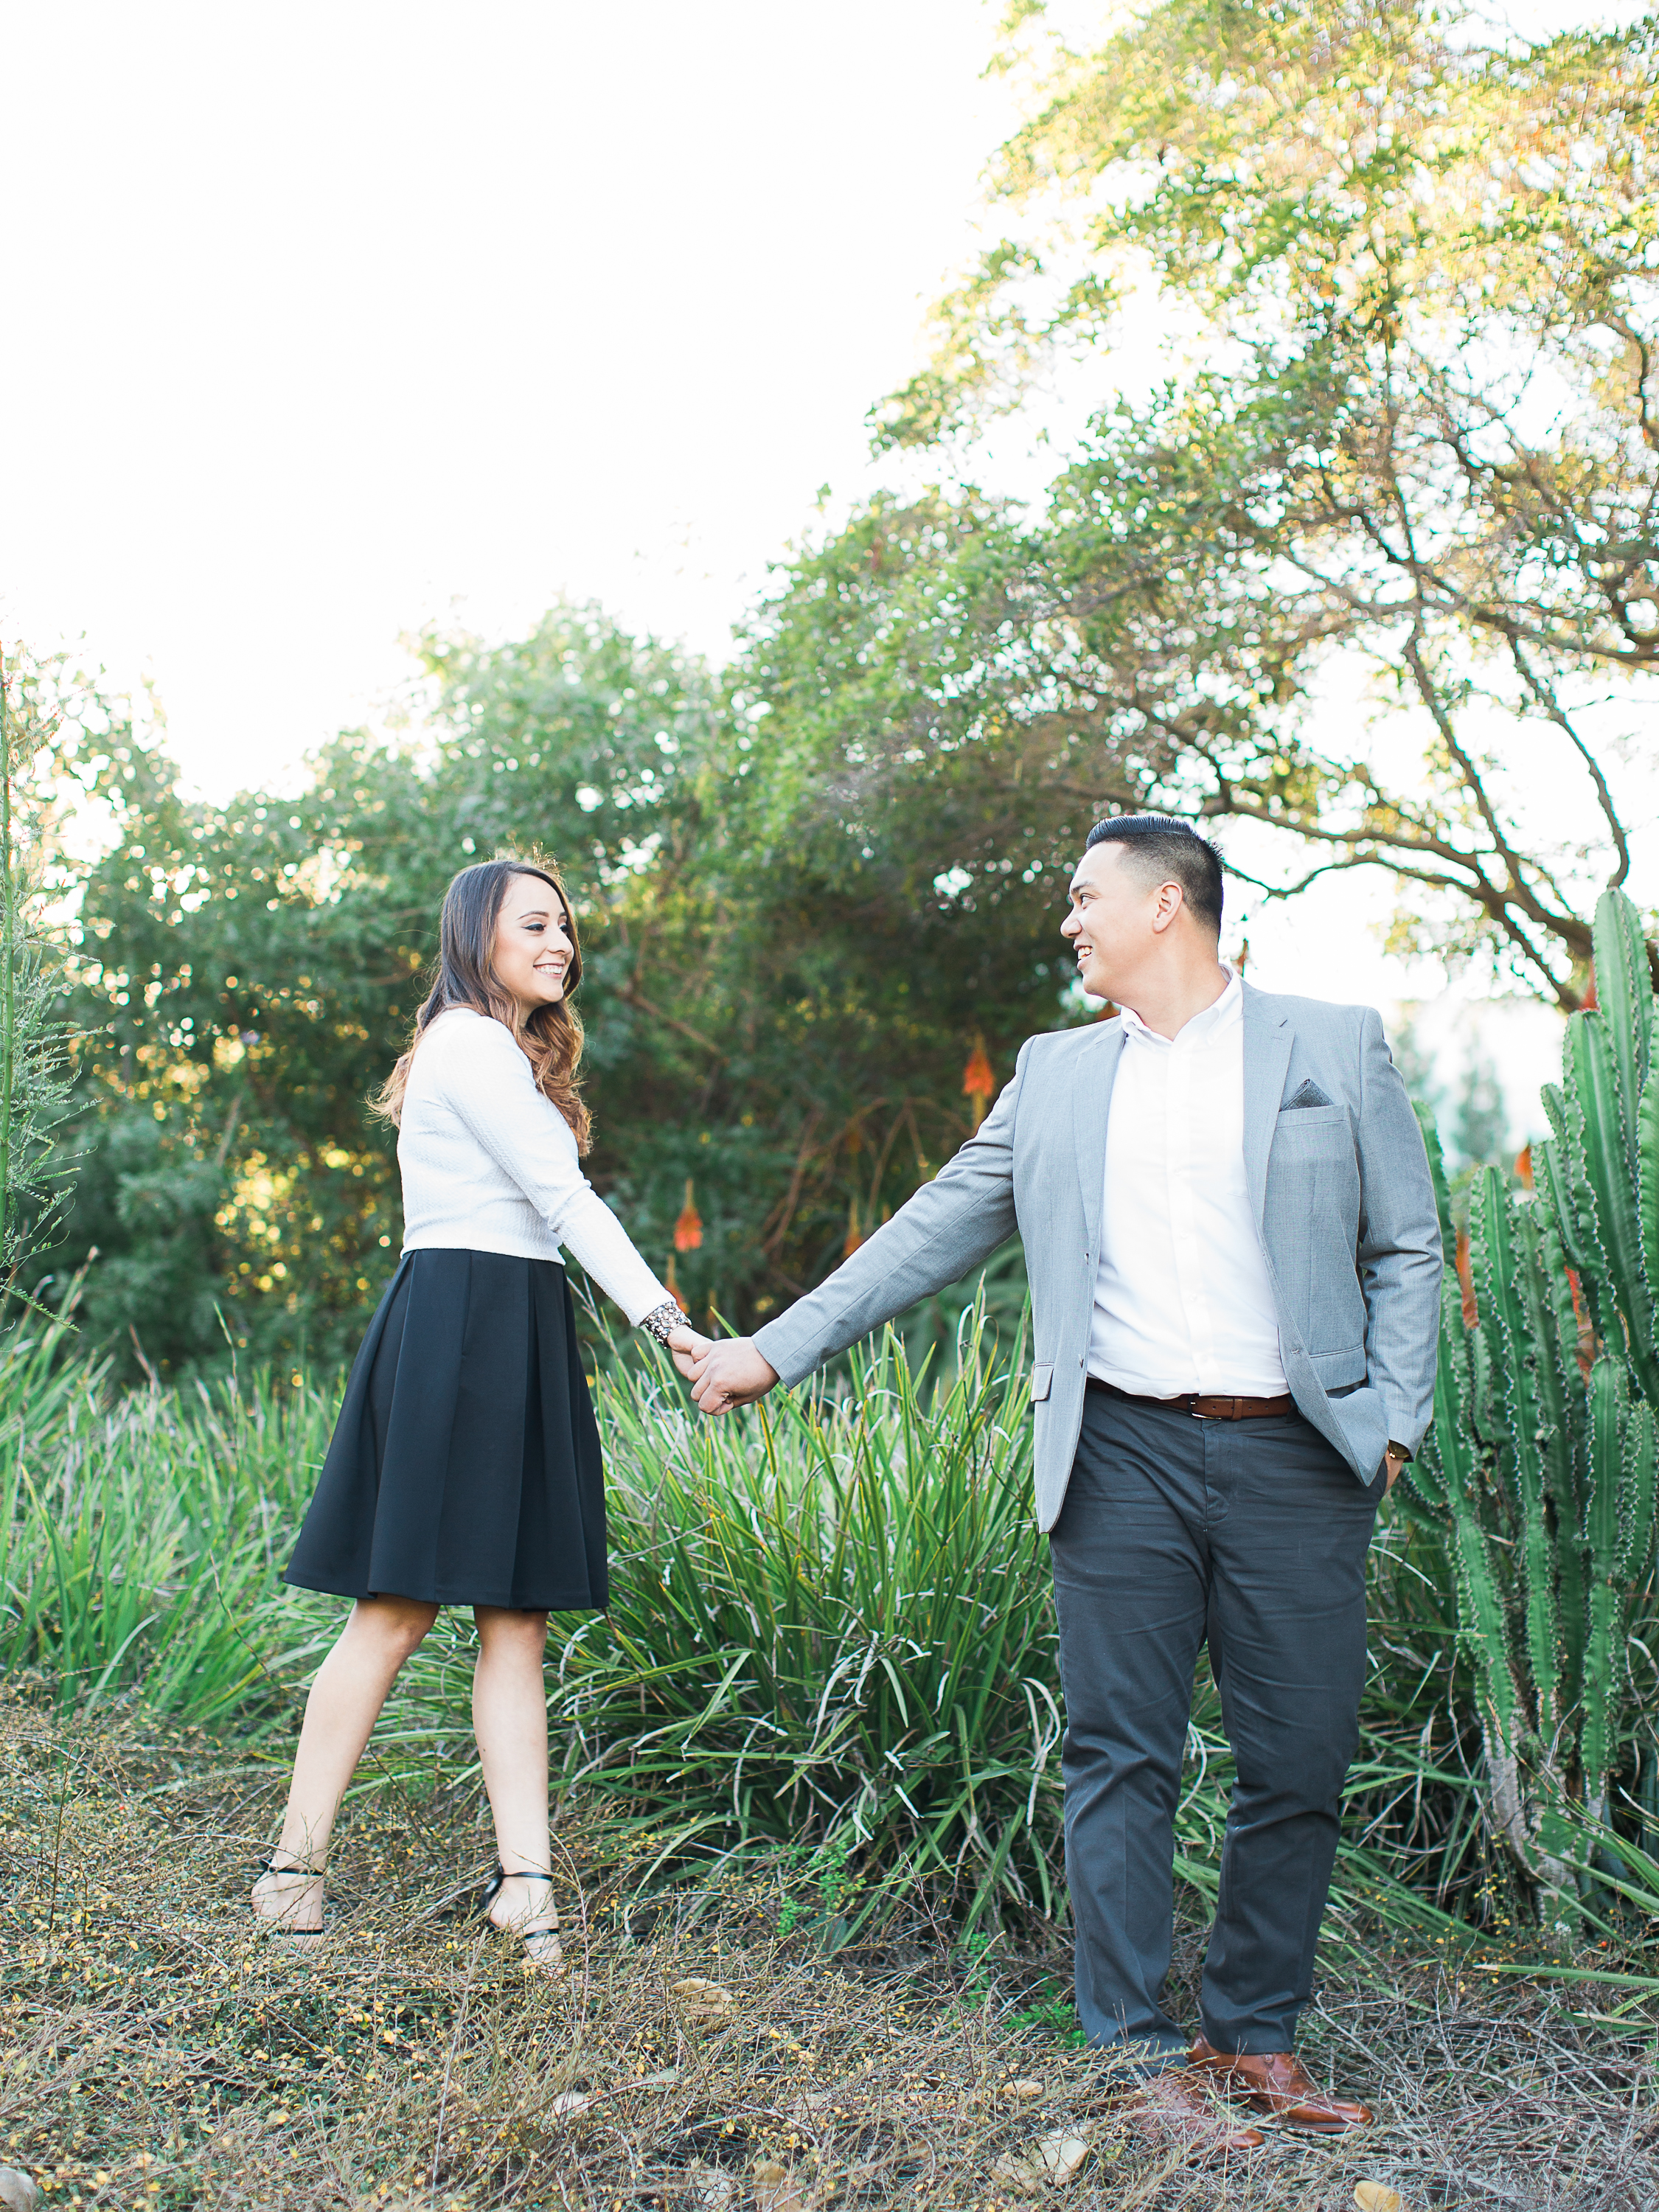 Klint and Yessy Engagement _ Brandon J Ferlin Photography-18.jpg